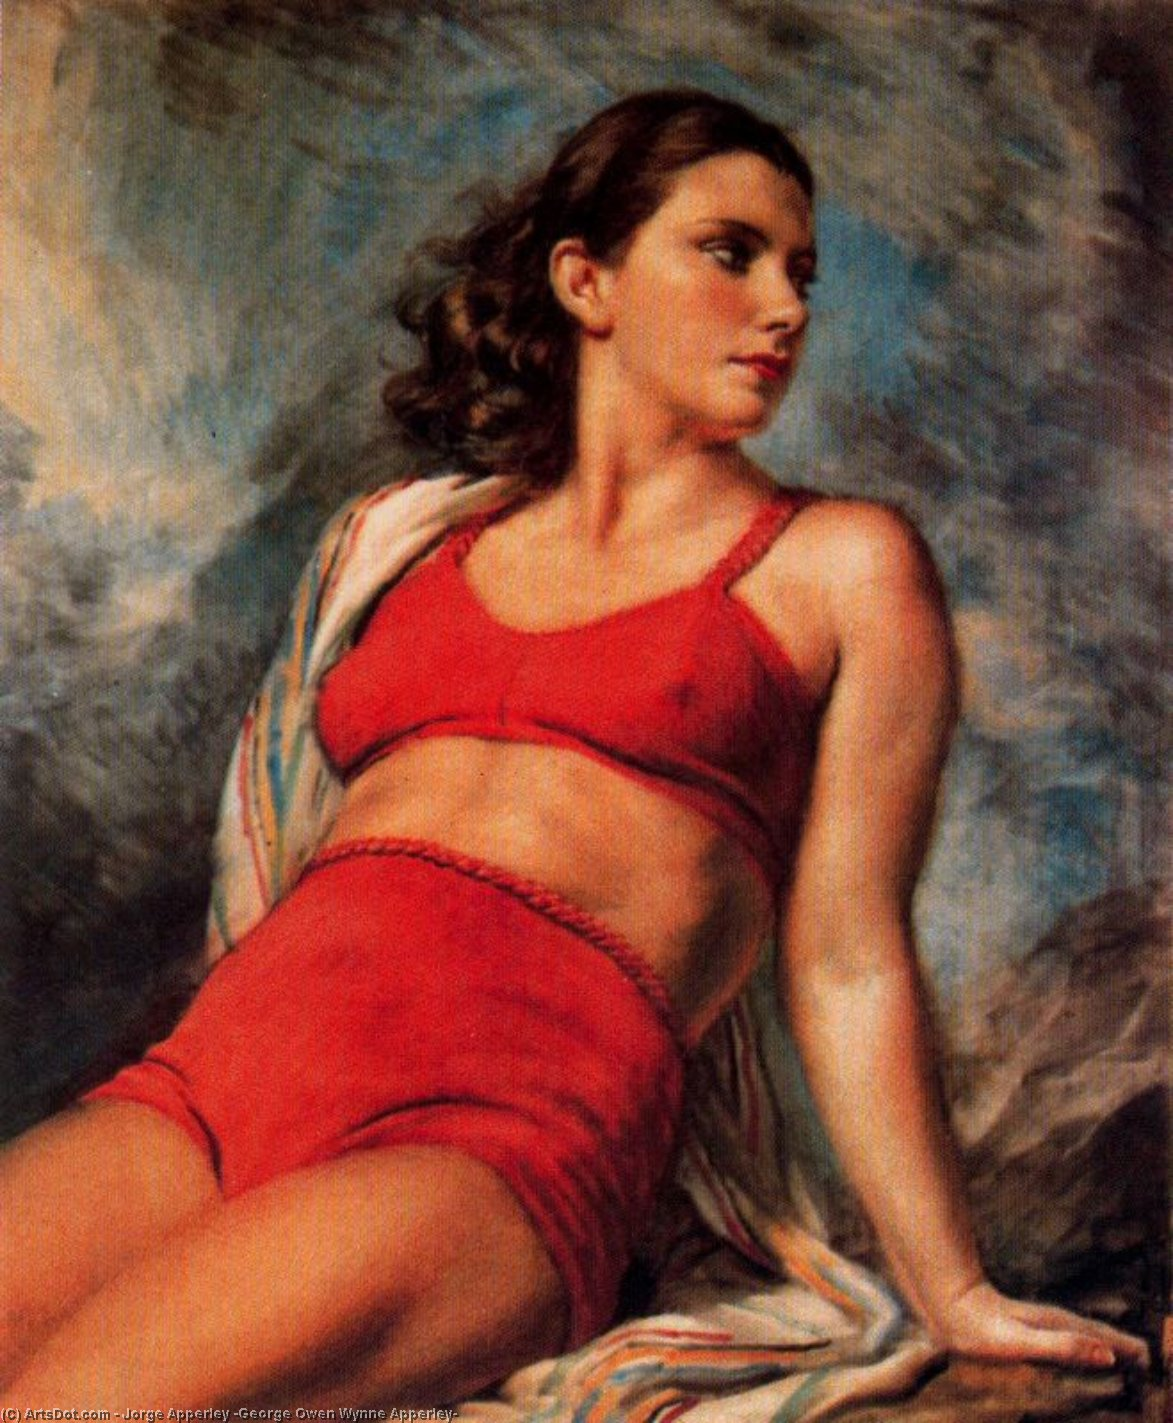 Maillot rojo de Jorge Apperley (George Owen Wynne Apperley) (1884-1960, United Kingdom)